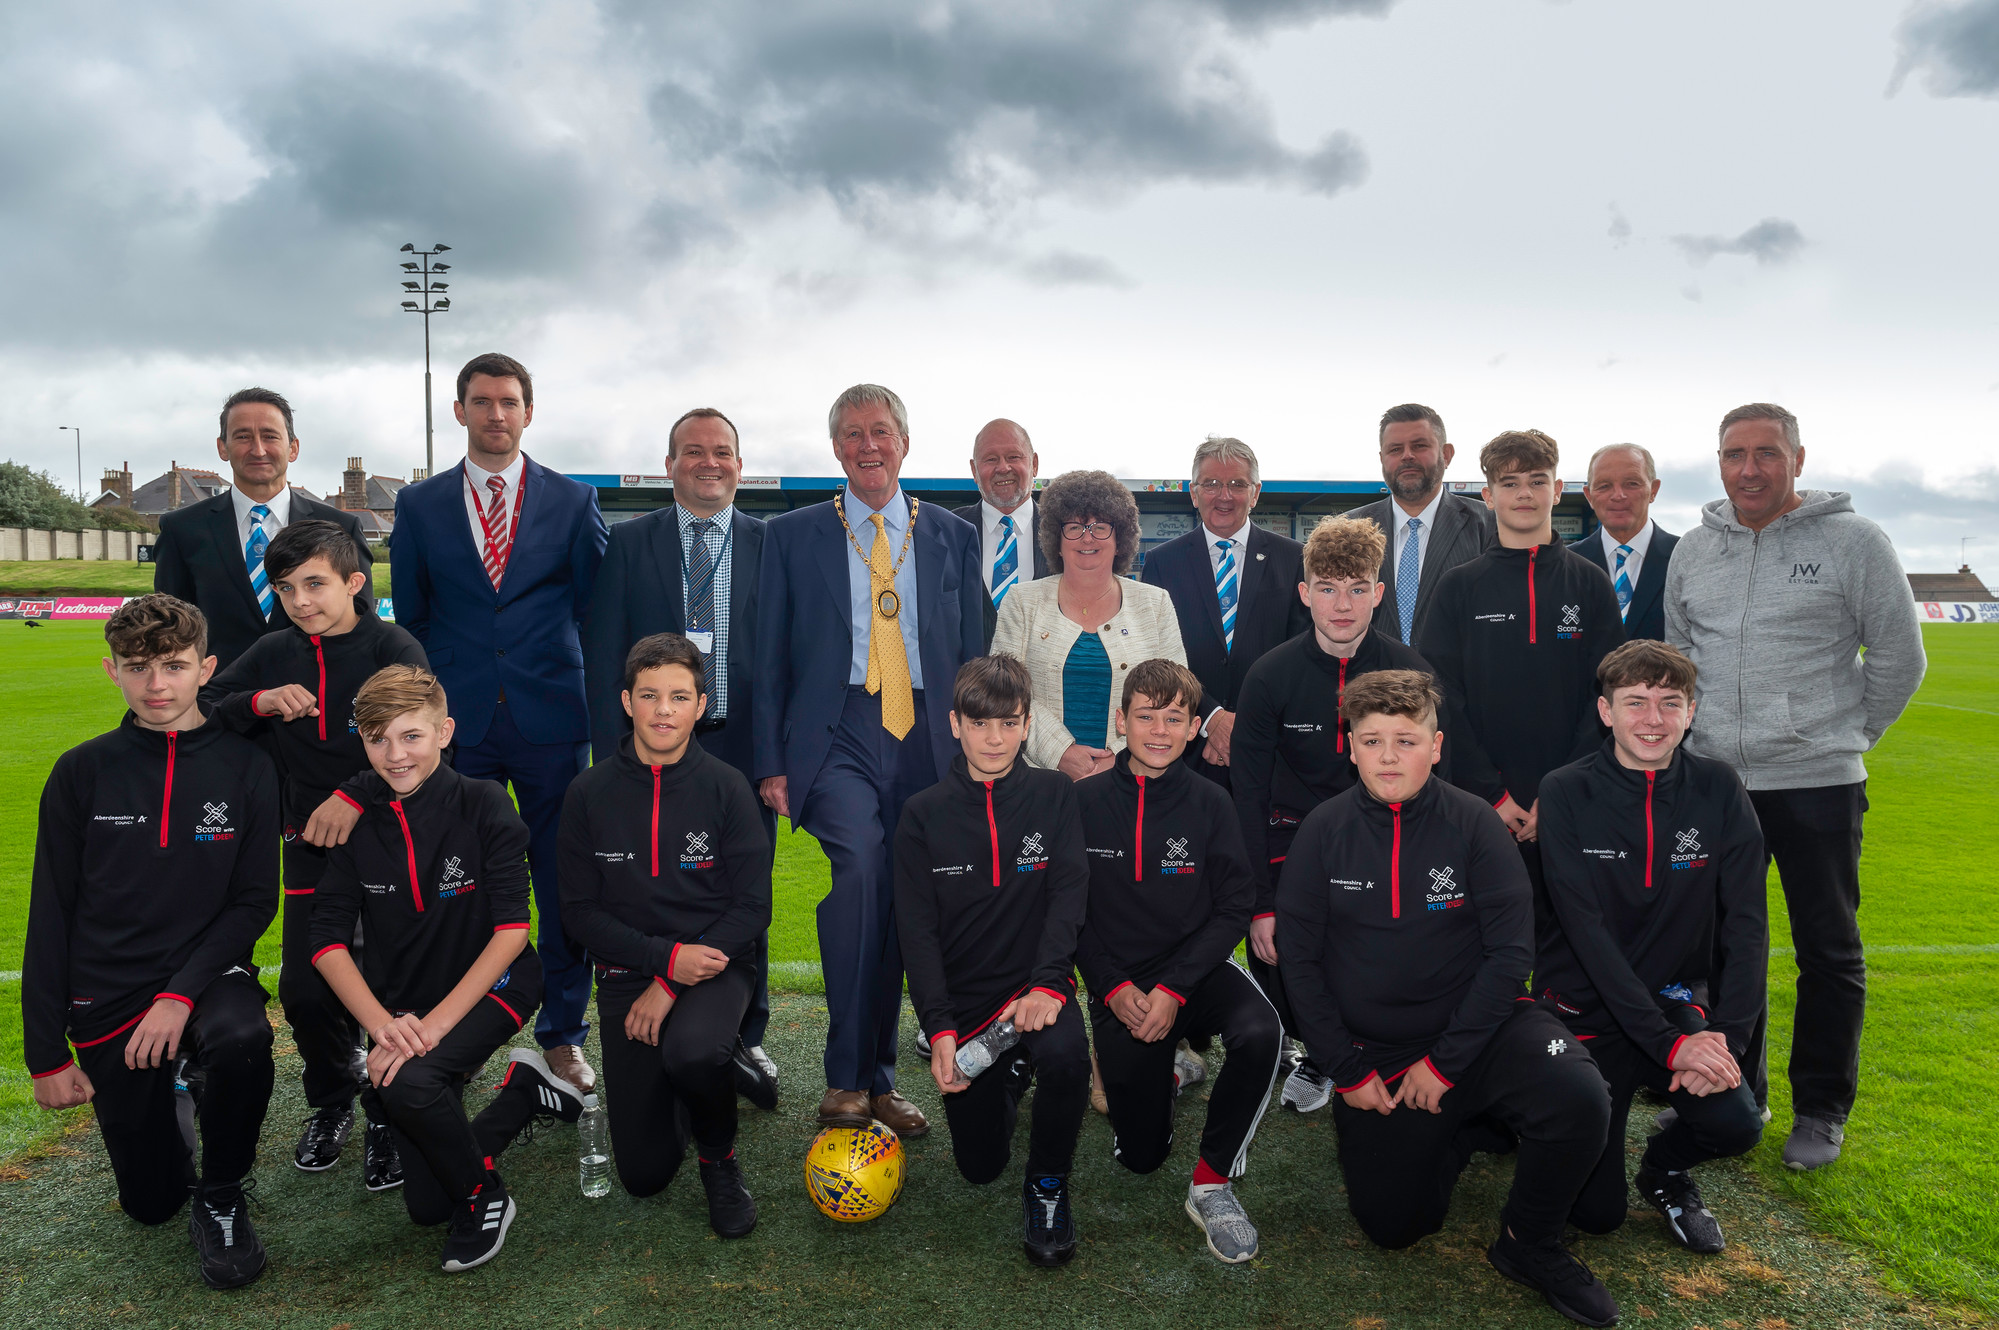 Innovative new partnership aims to help pupils reach their goals